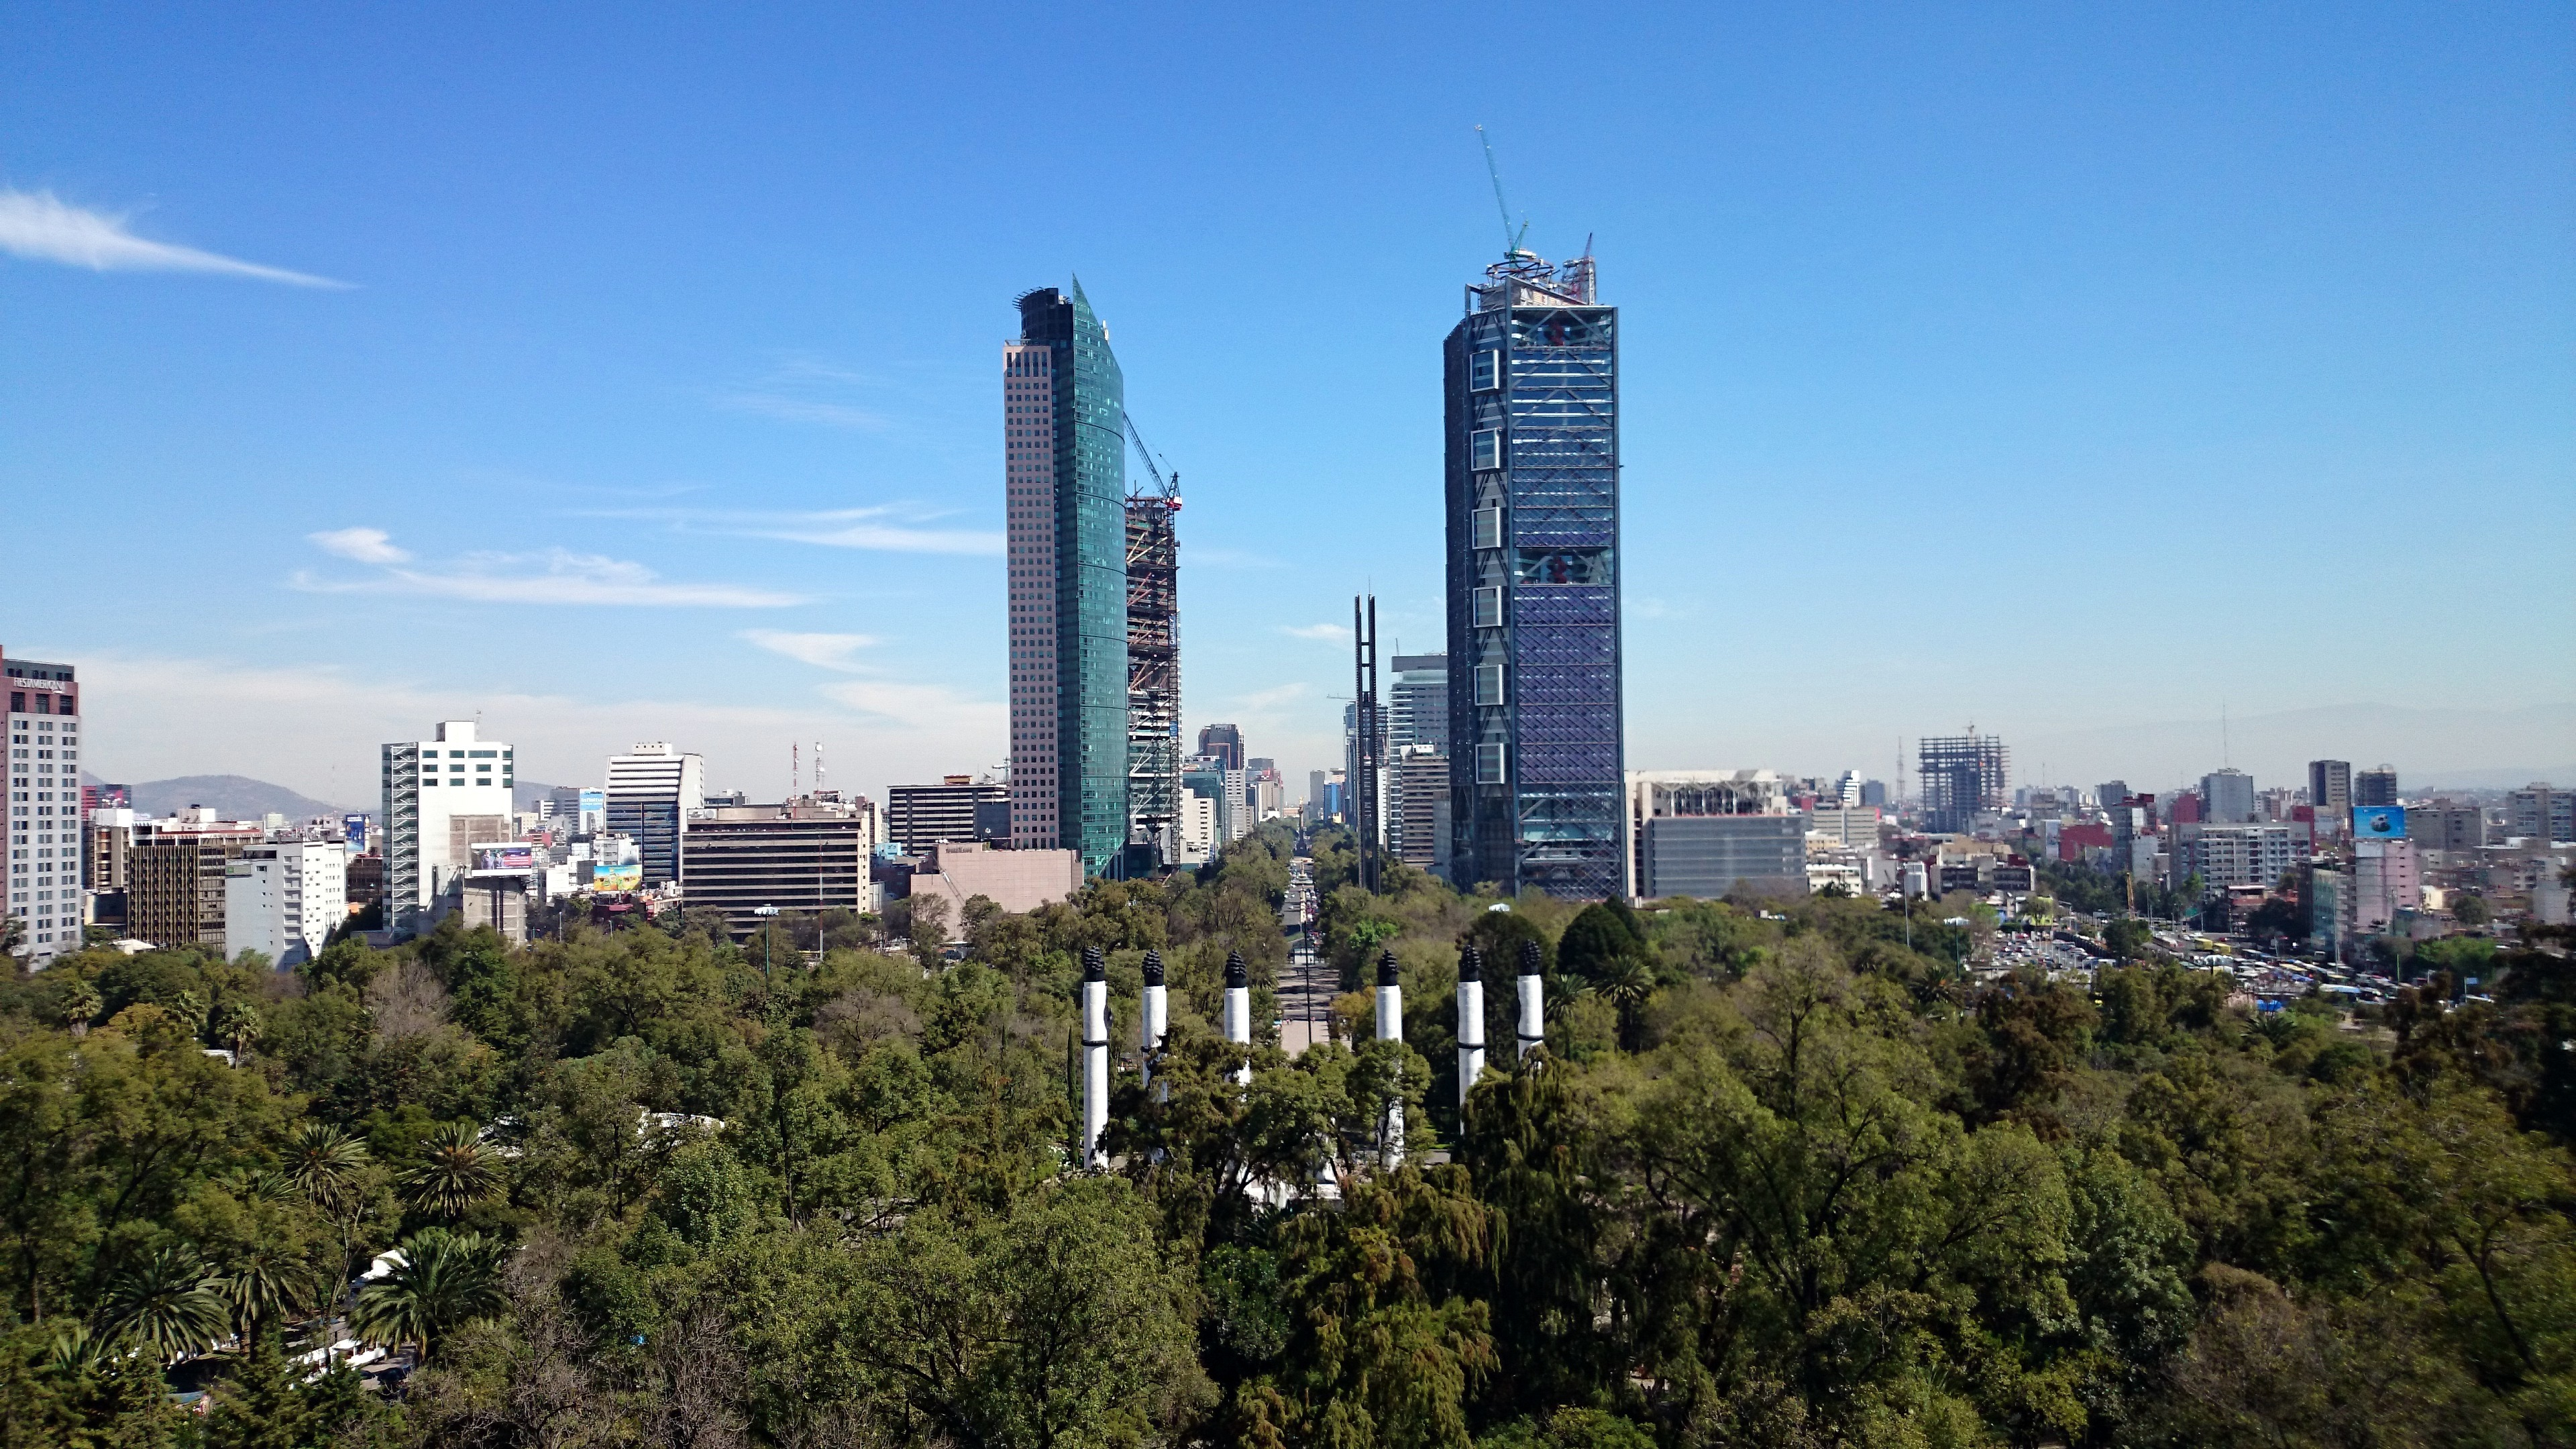 Mexico City Wallpapers 3840x2160 px FG8JW2J WallpapersExpertcom 3840x2160